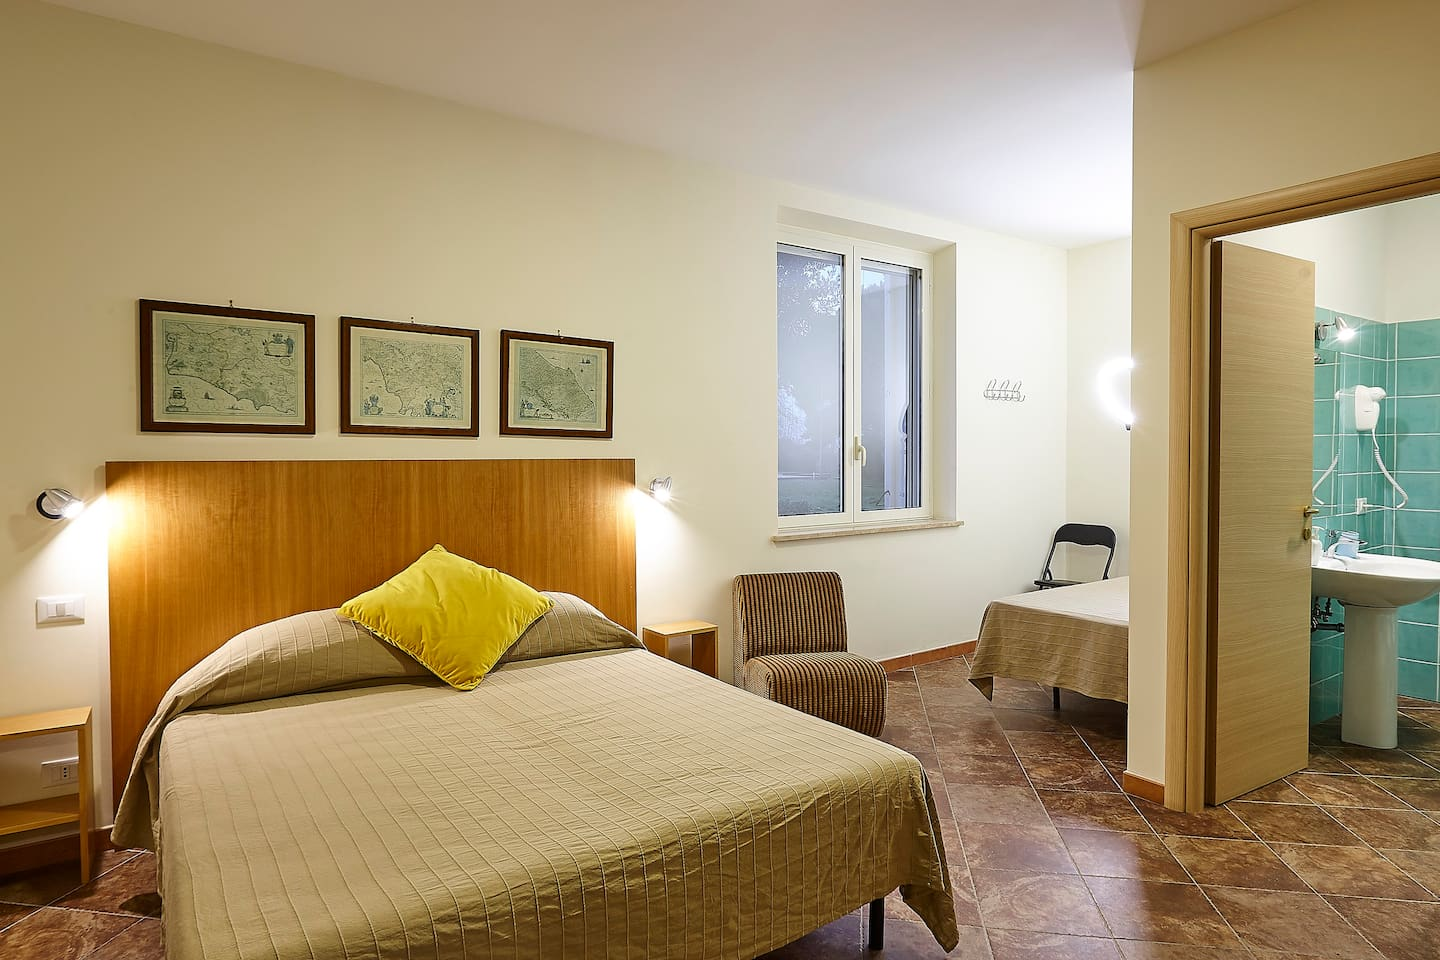 triple room with king size bed and single bed